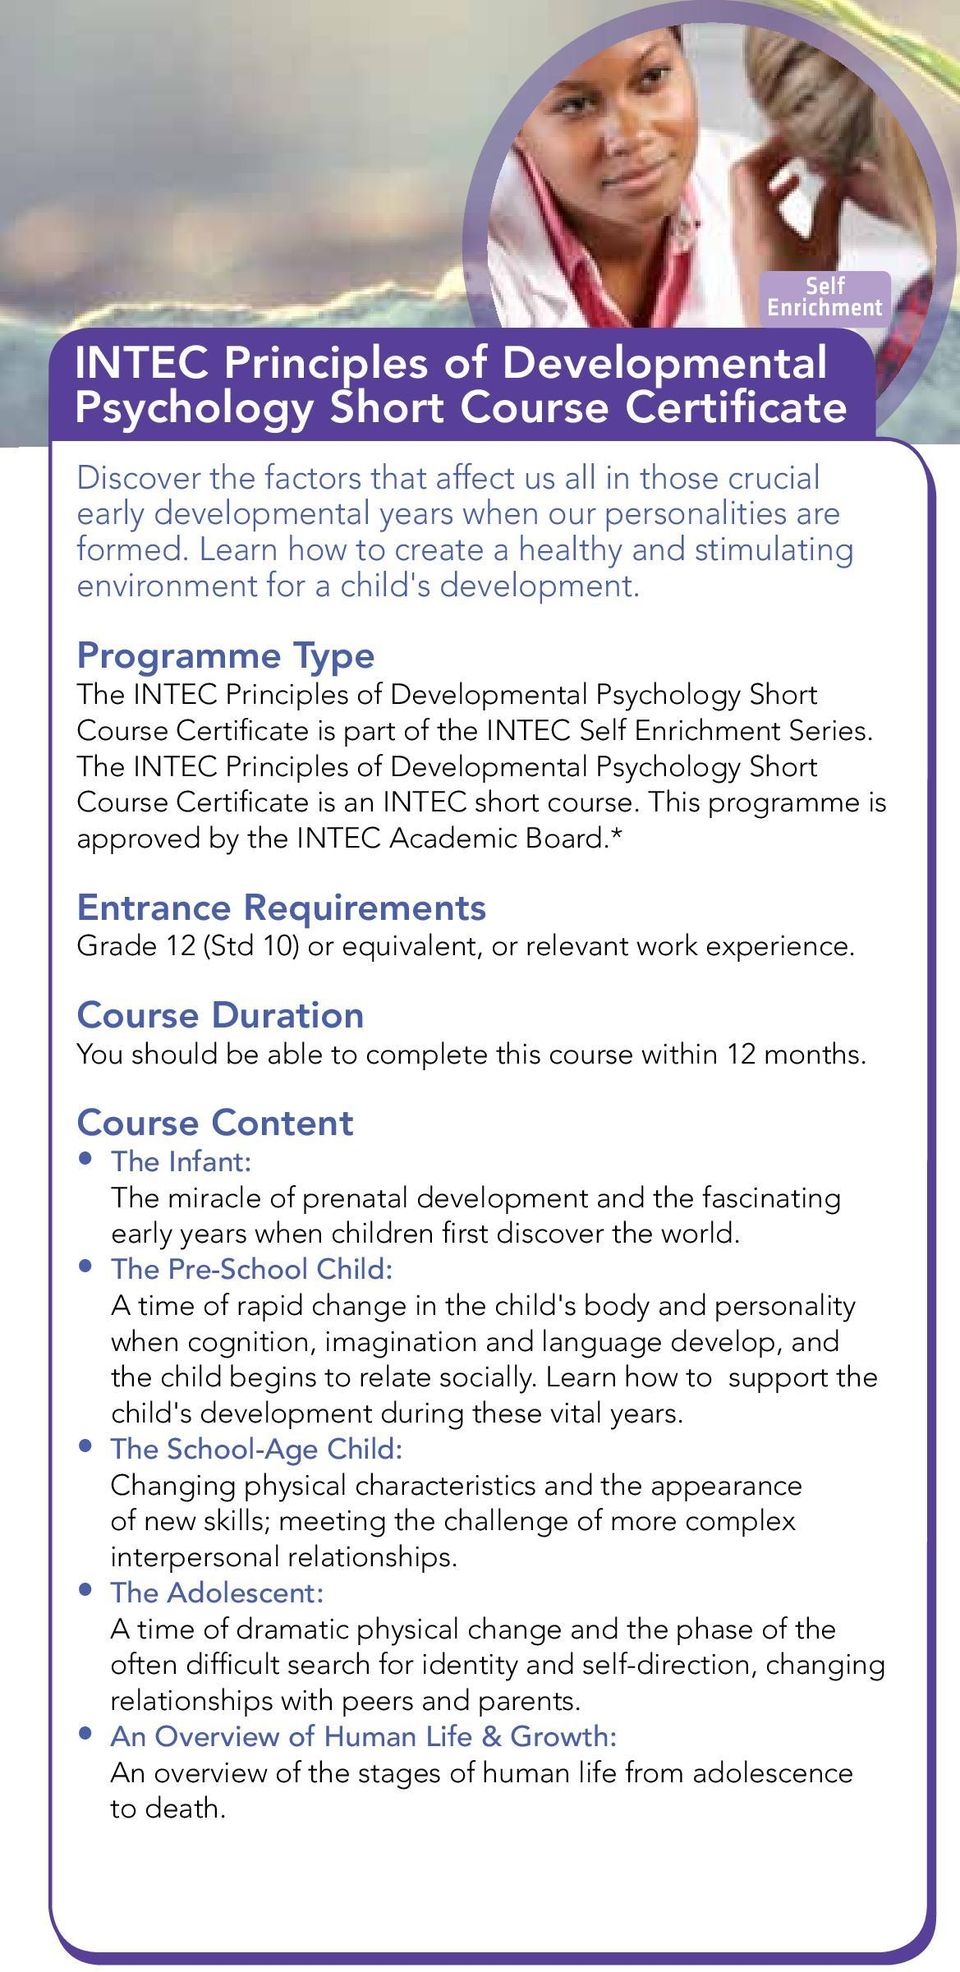 Programme Type The INTEC Principles of Developmental Psychology Short Course Certificate is part of the INTEC Self Enrichment Series.